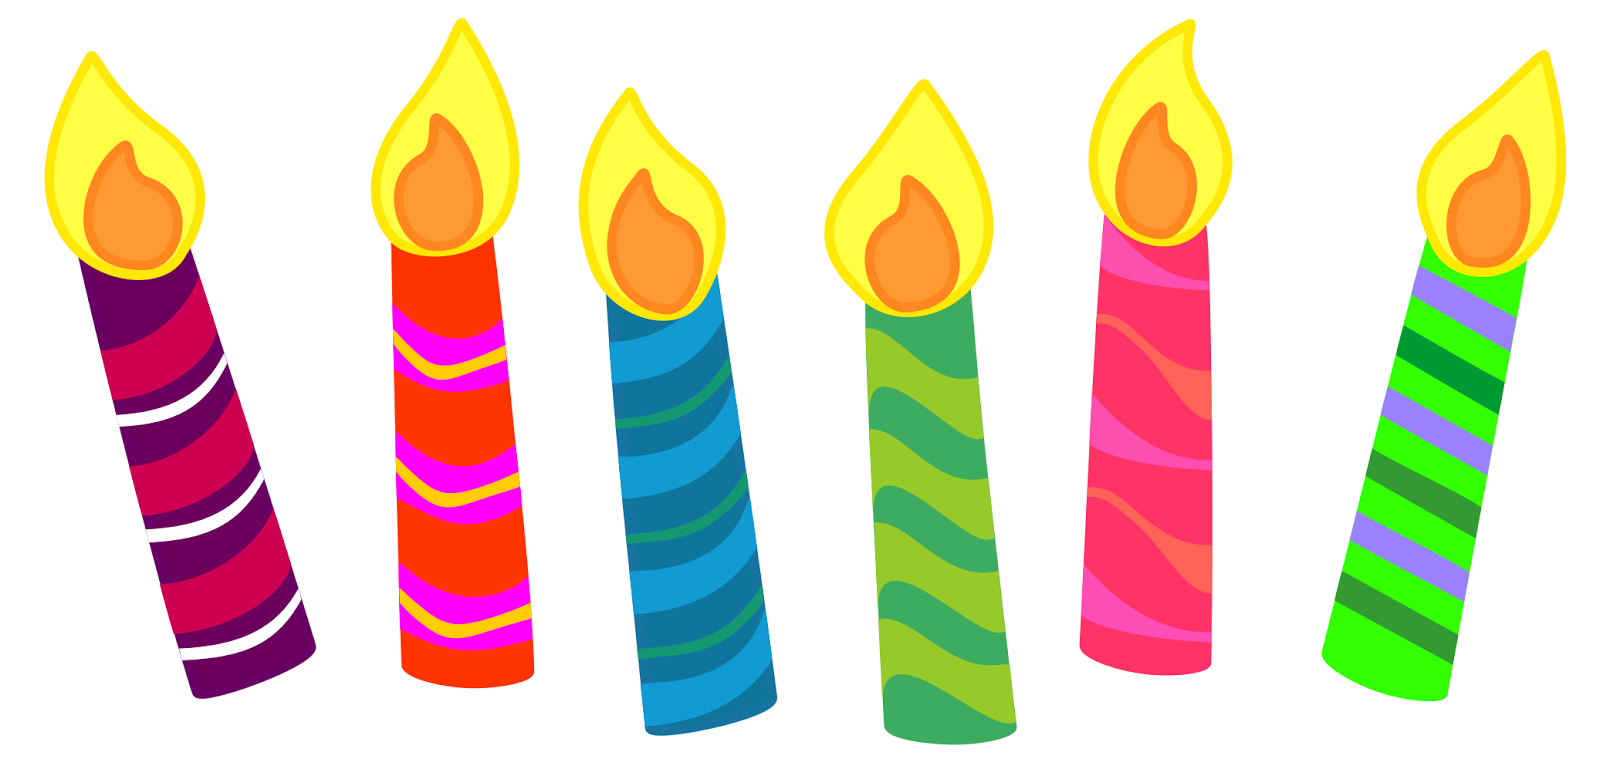 medium resolution of candles clipart free large images